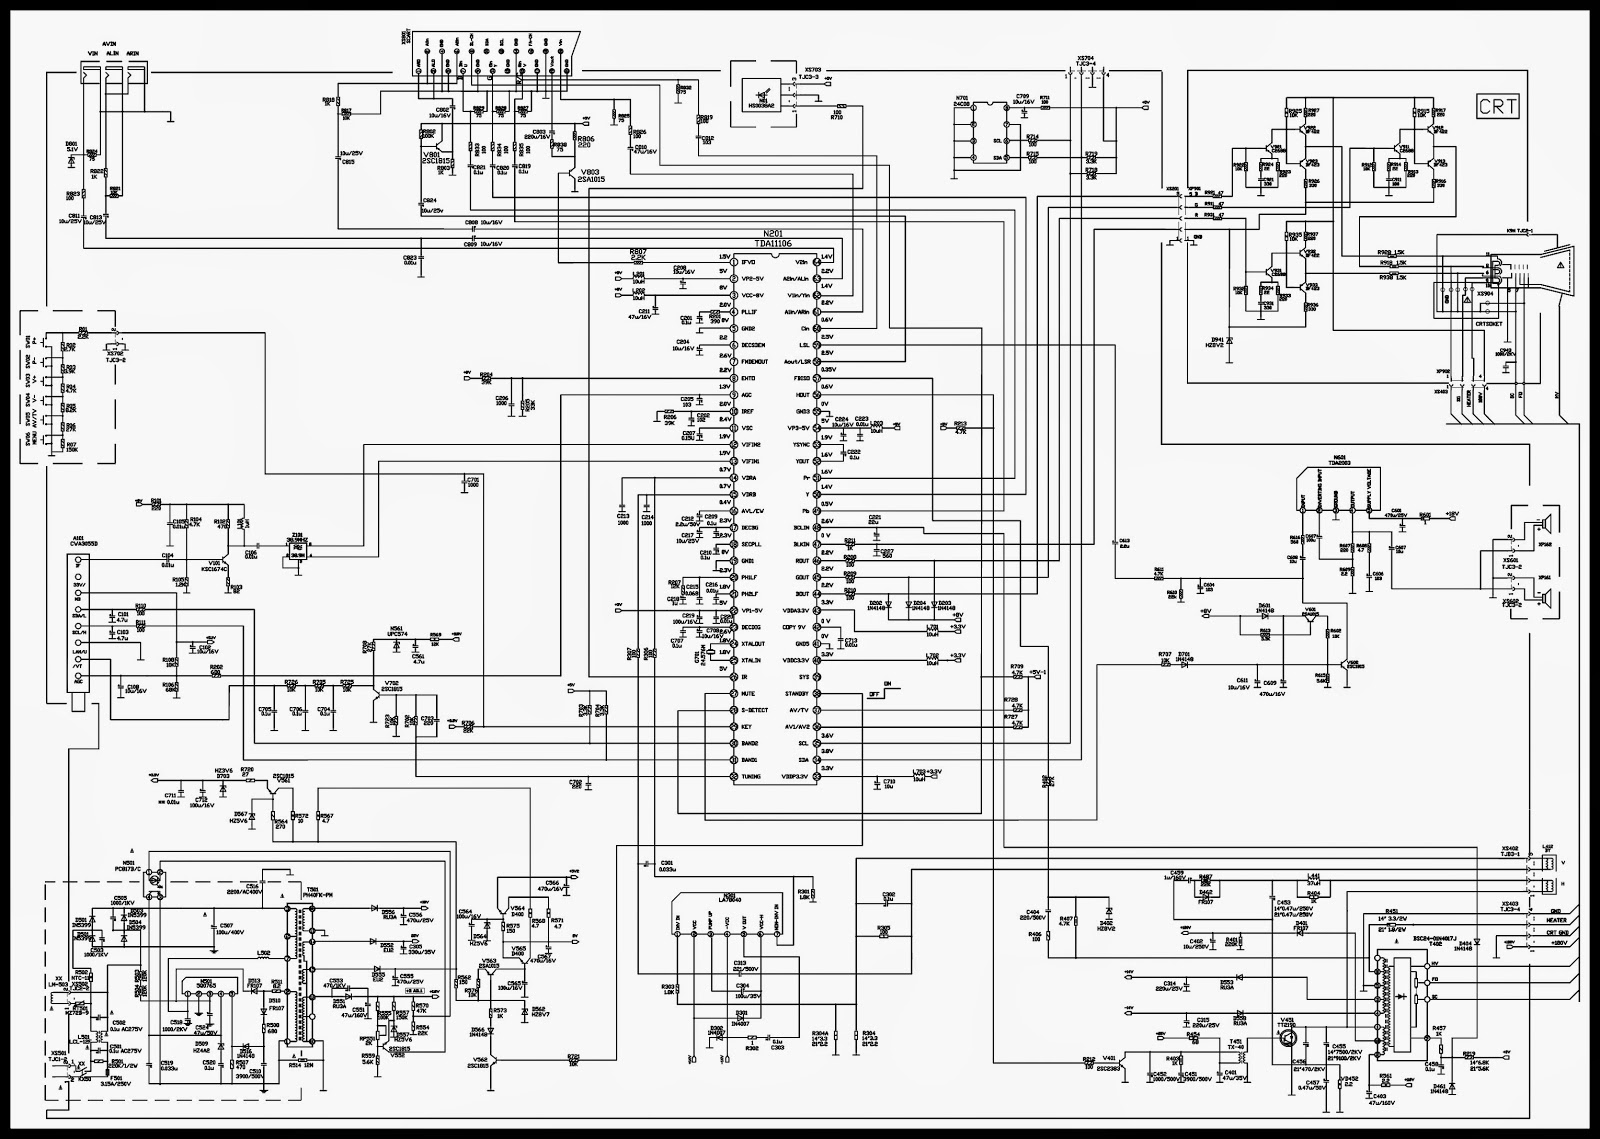 color tv circuit diagrams using ics tda11106 and tda8821 devant led tv schematic diagram